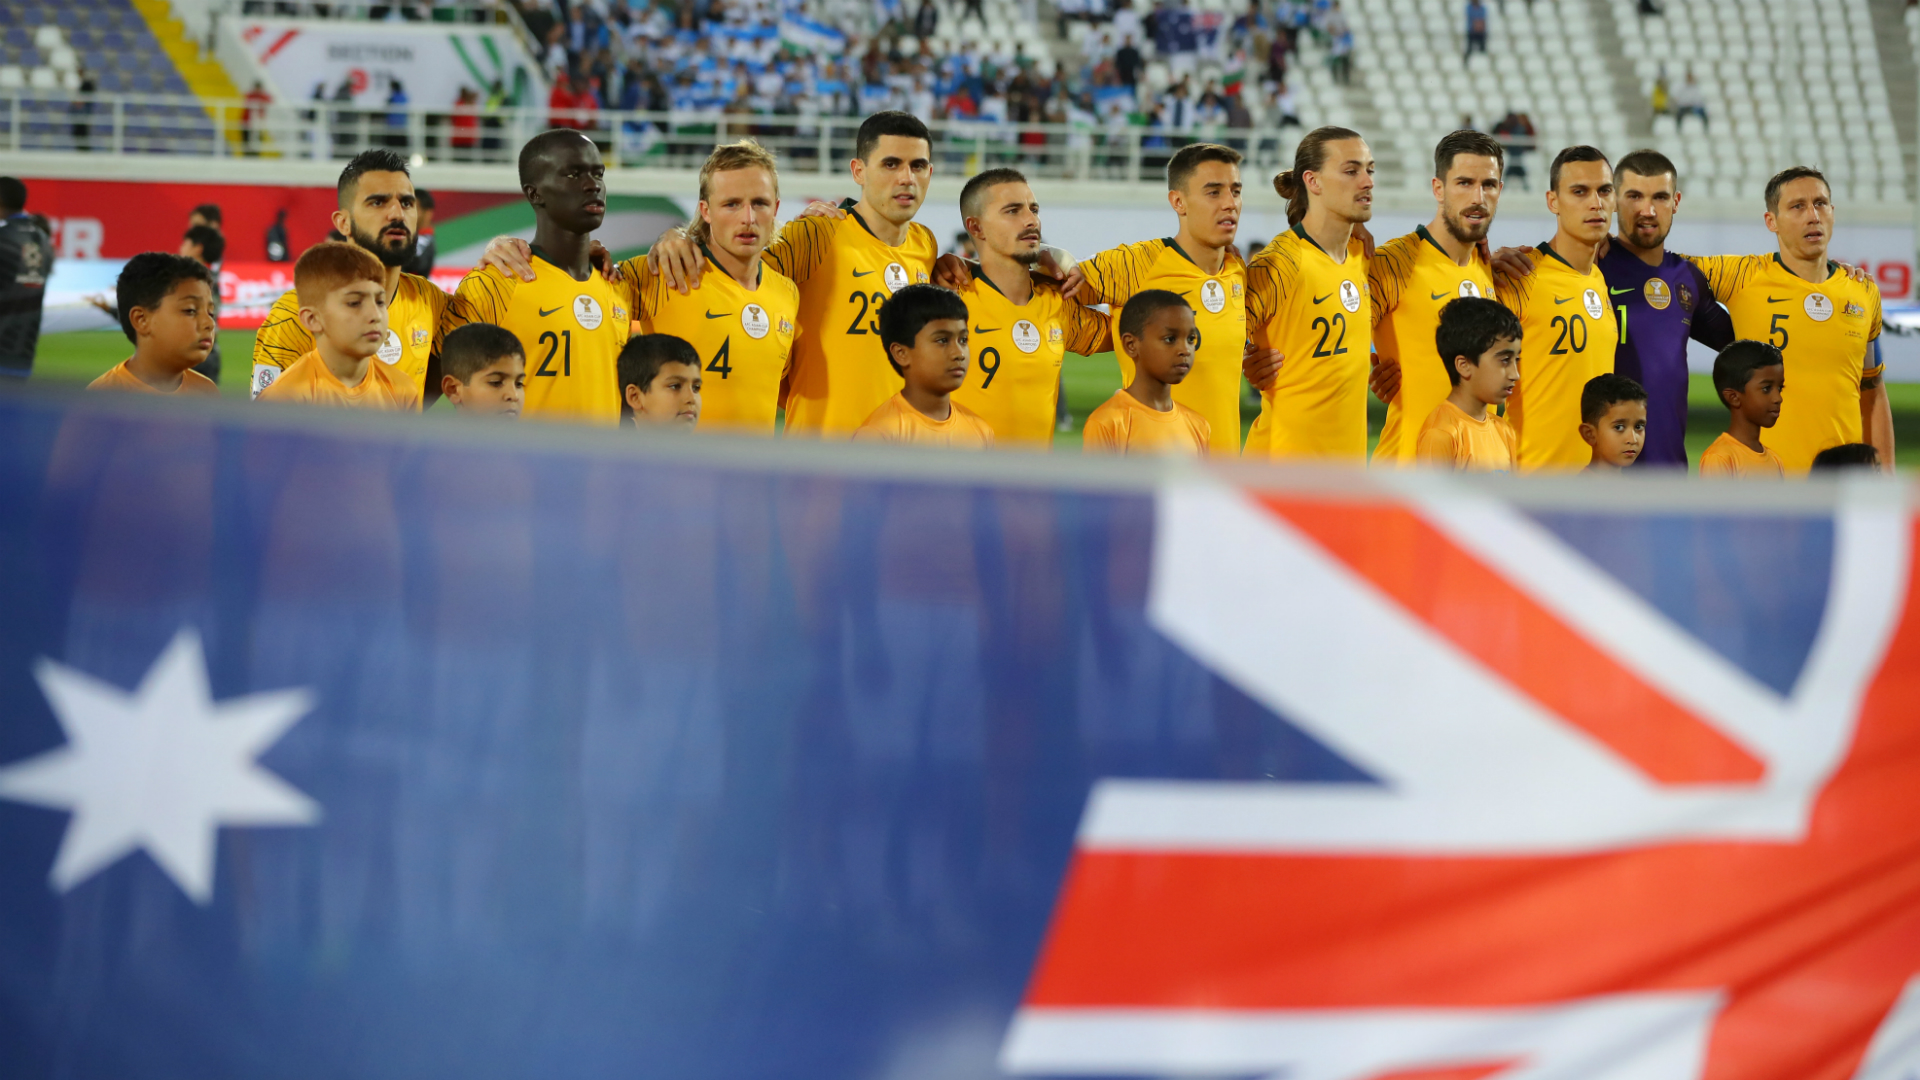 A-League and Australian football news LIVE: Socceroos' Copa America debut in doubt after delay